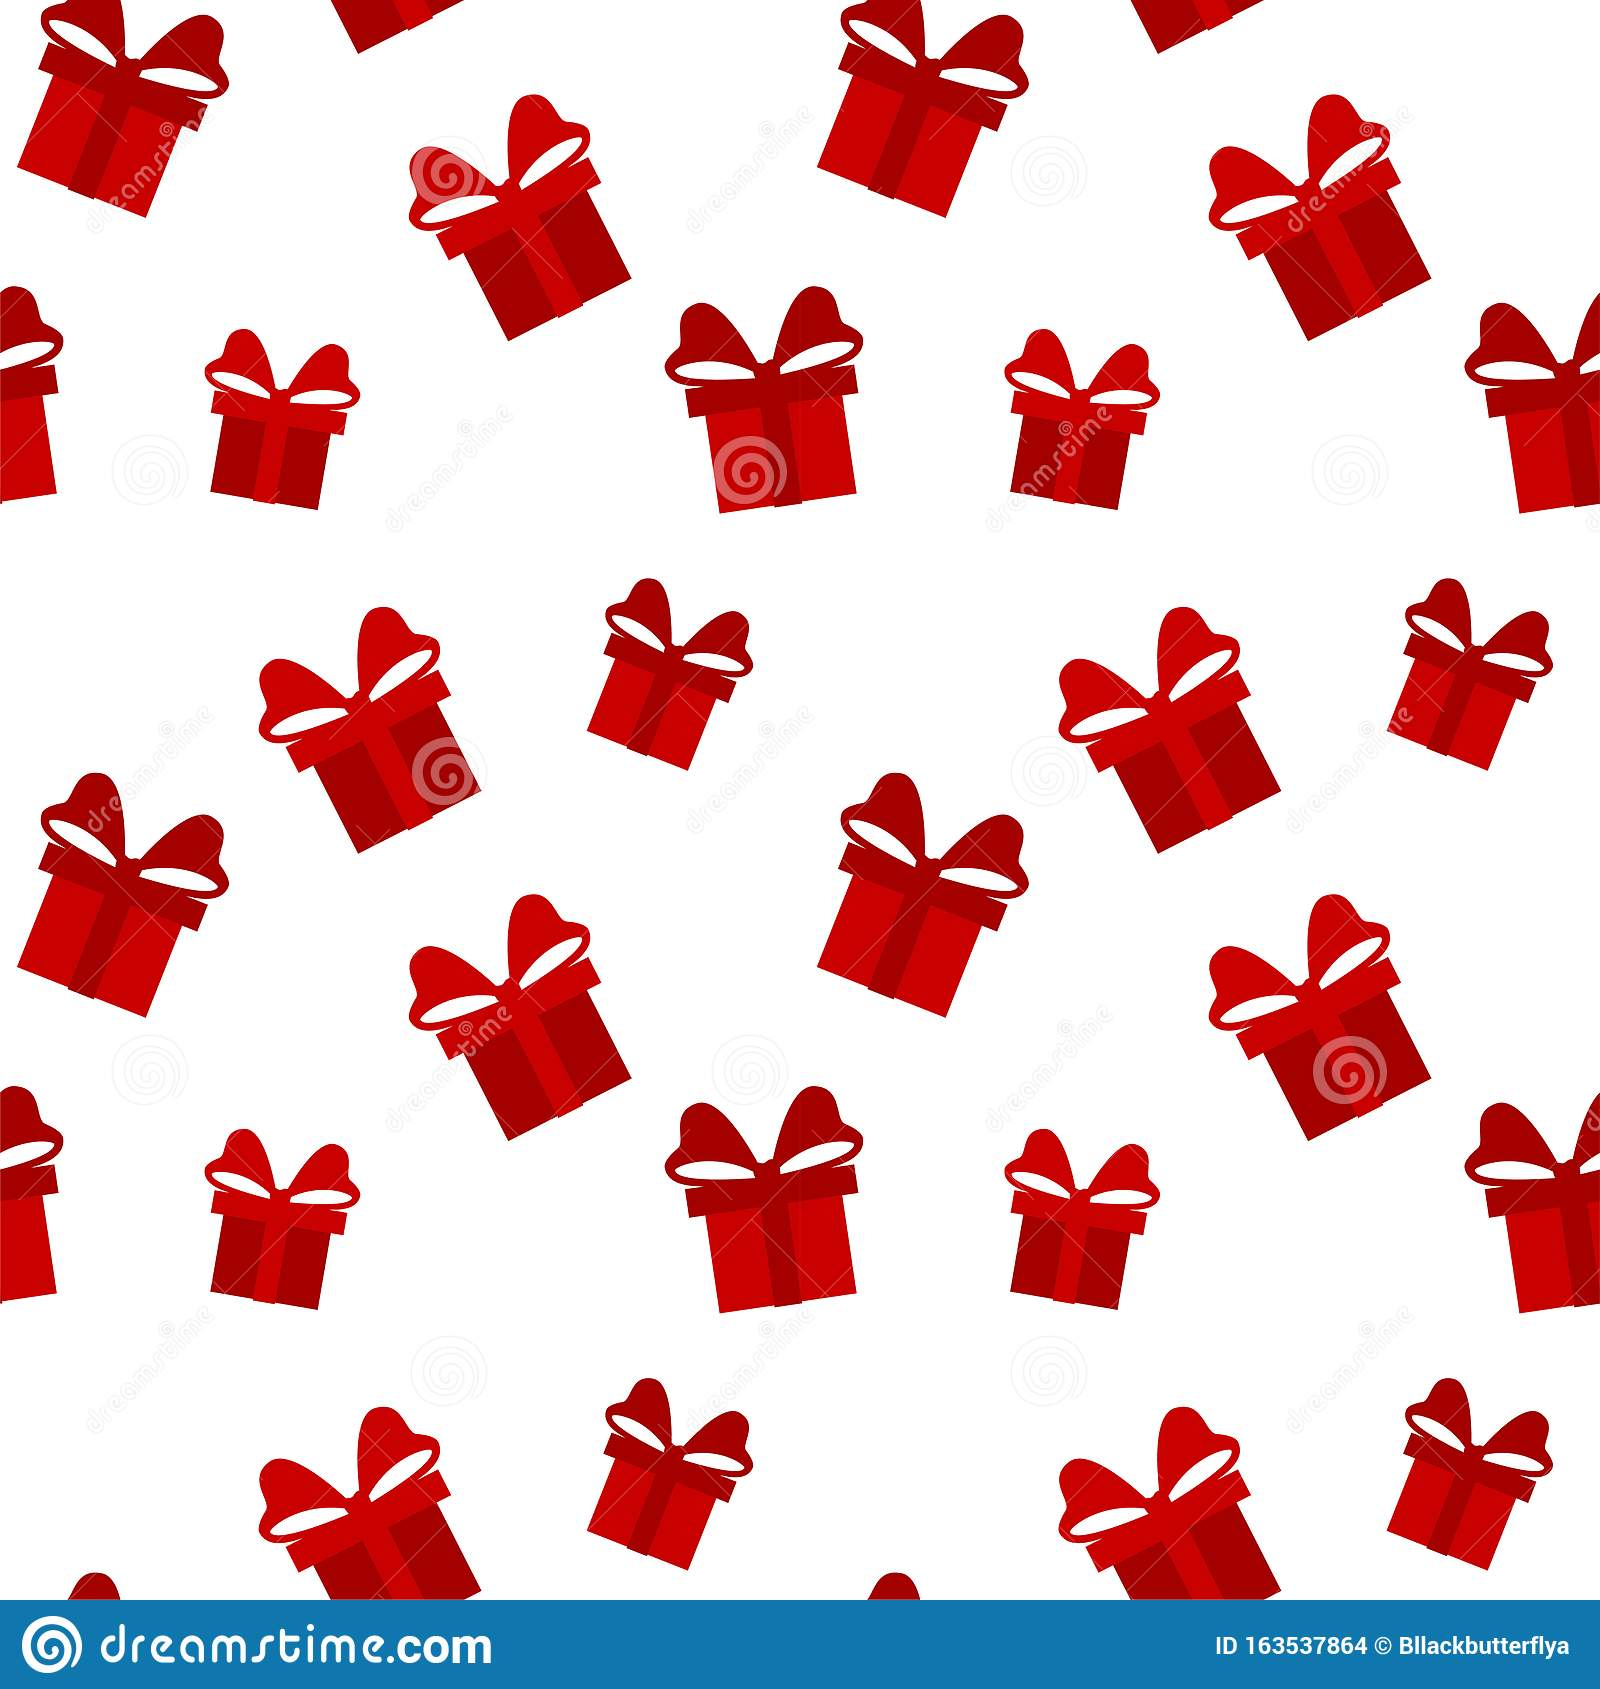 Red And White Gift Box Background Merry Christmas Pattern Seamless Endless Texture For Gift Wrap Wallpaper Web Banner Stock Illustration Illustration Of Paper Fabric 163537864